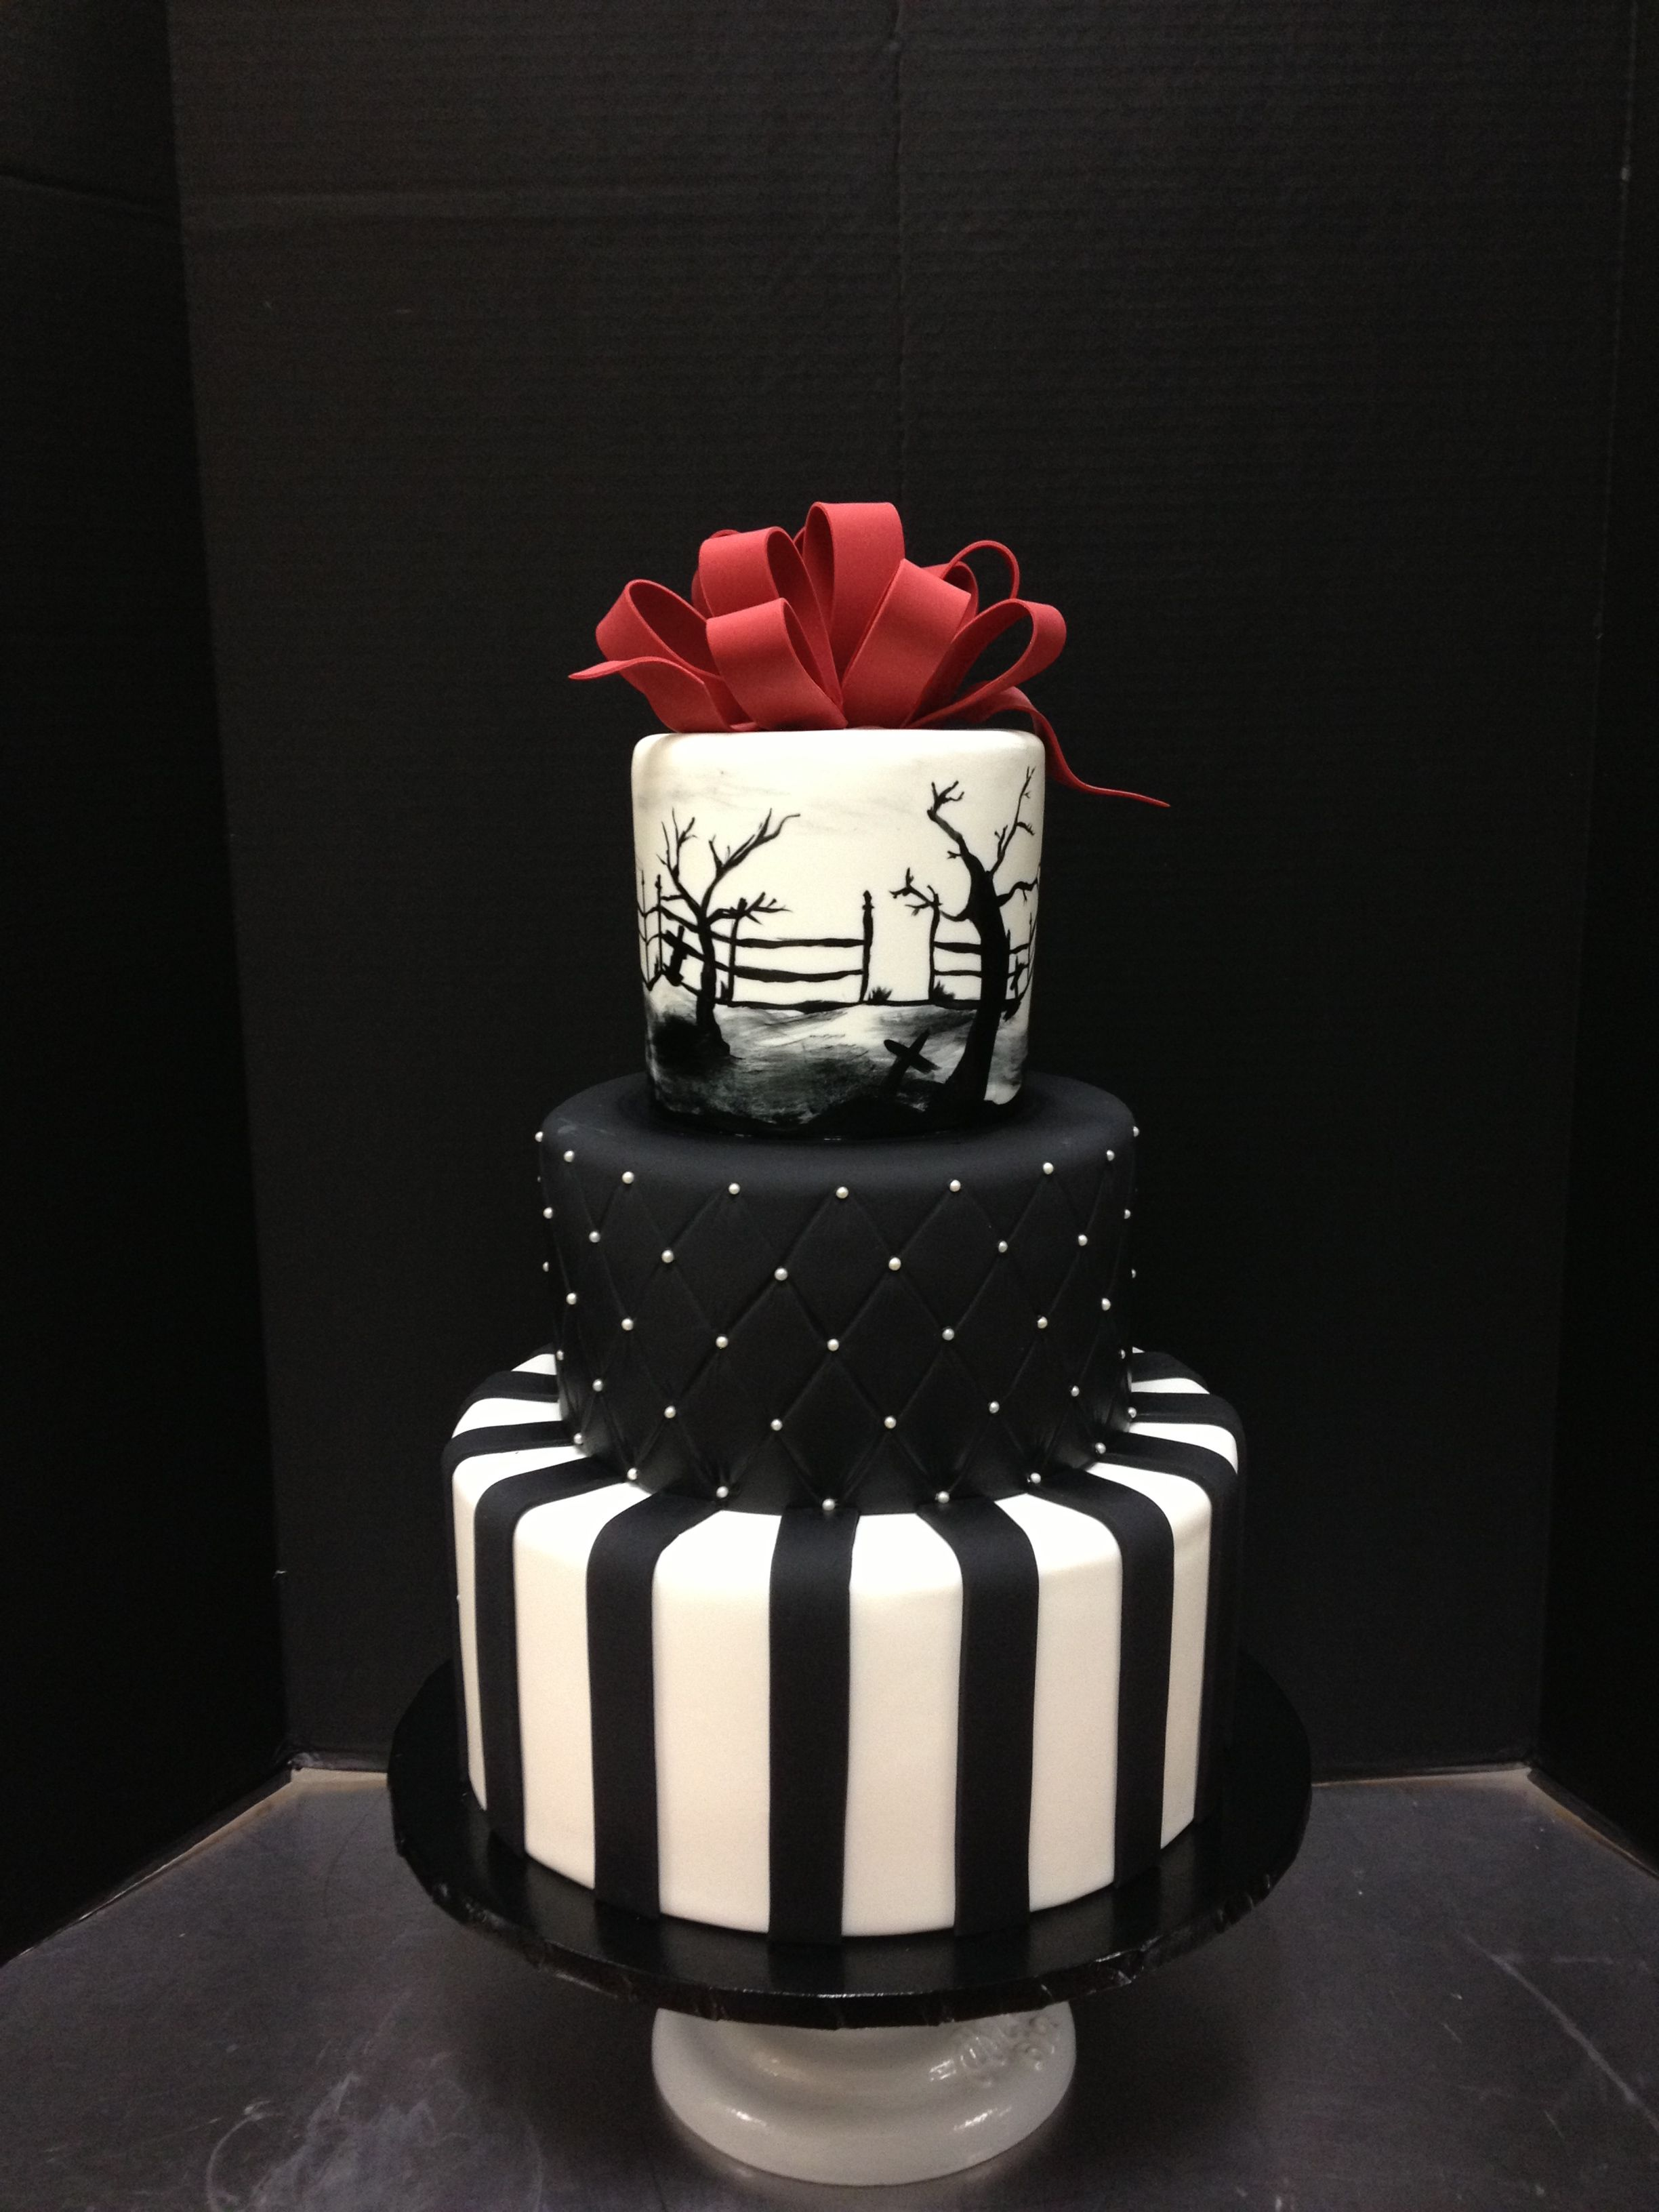 three tier fondant nightmare before christmas wedding cake them black and white with a red